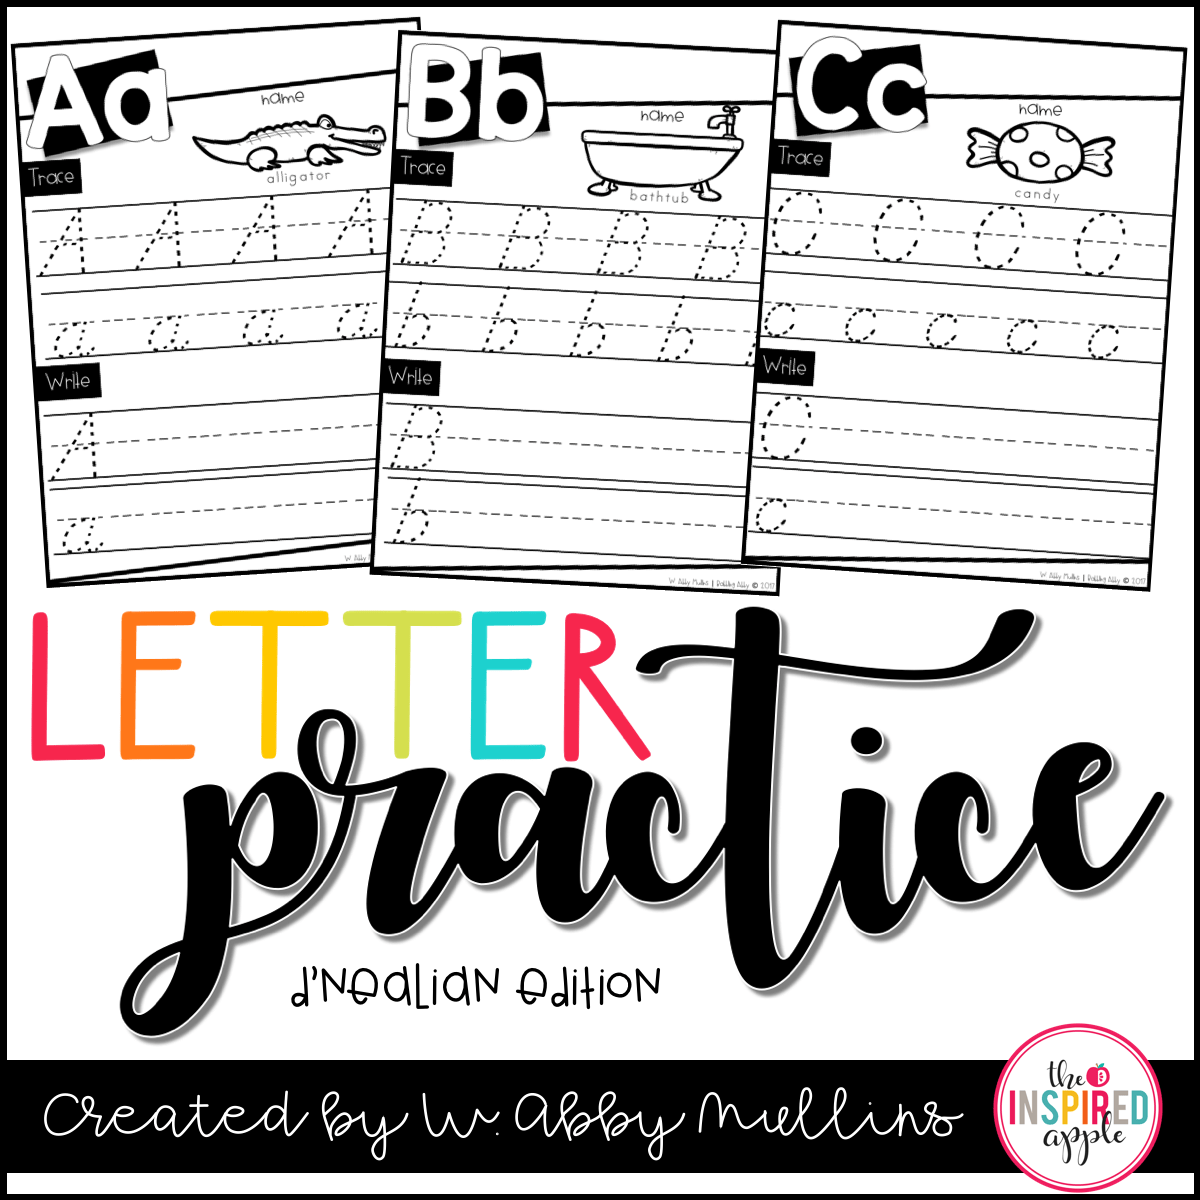 This Is A Free Set Of D Nealian Letter Practice Worksheets That Can Be Used In Preschool